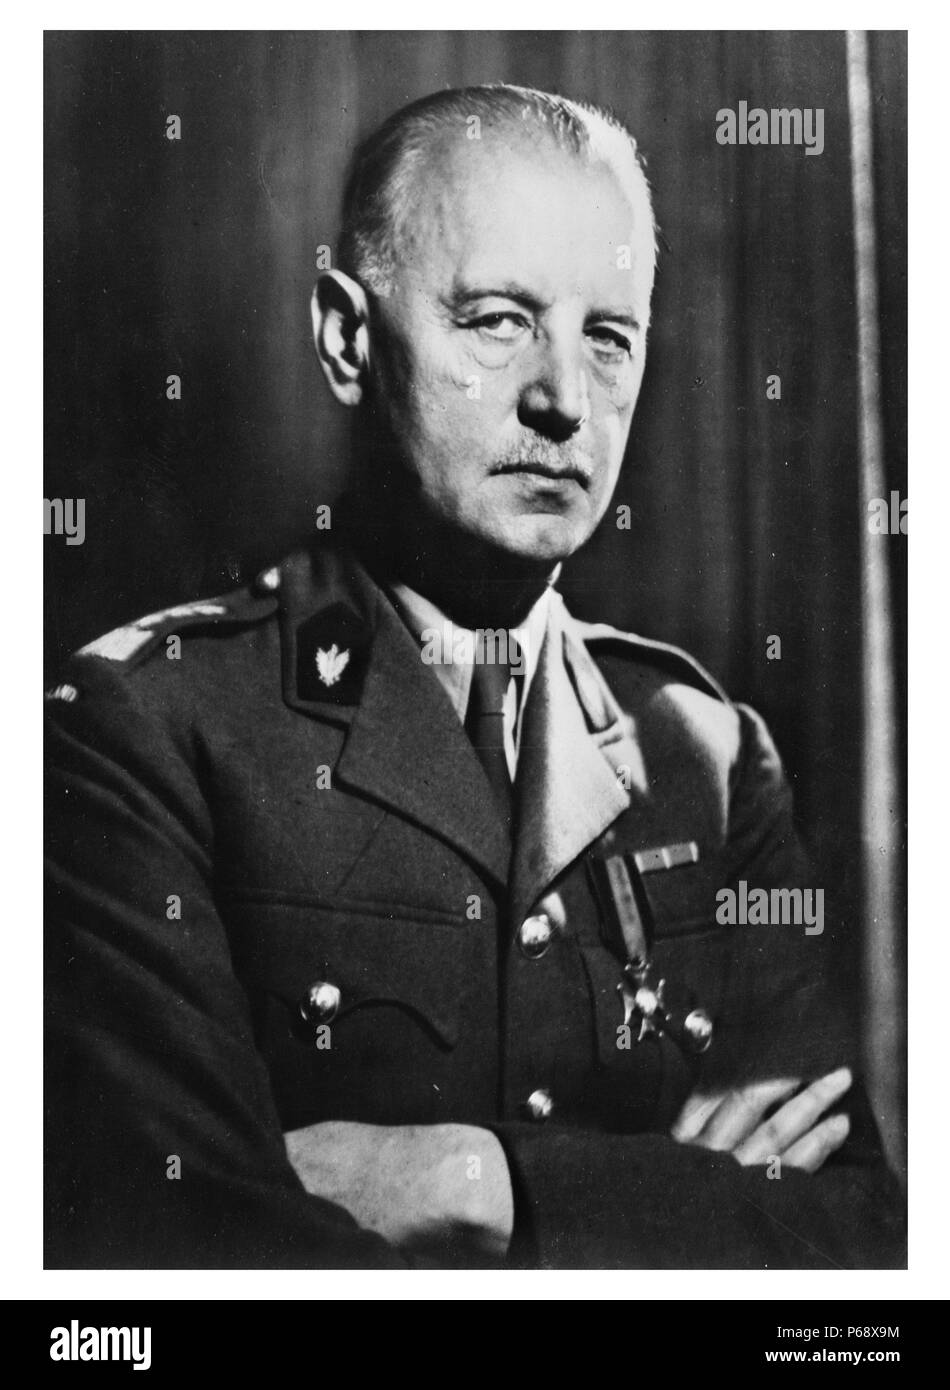 Photograph of Wladyslaw Sikorski (1881-1943) was a Polish military and political leader. Dated 1939. - Stock Image